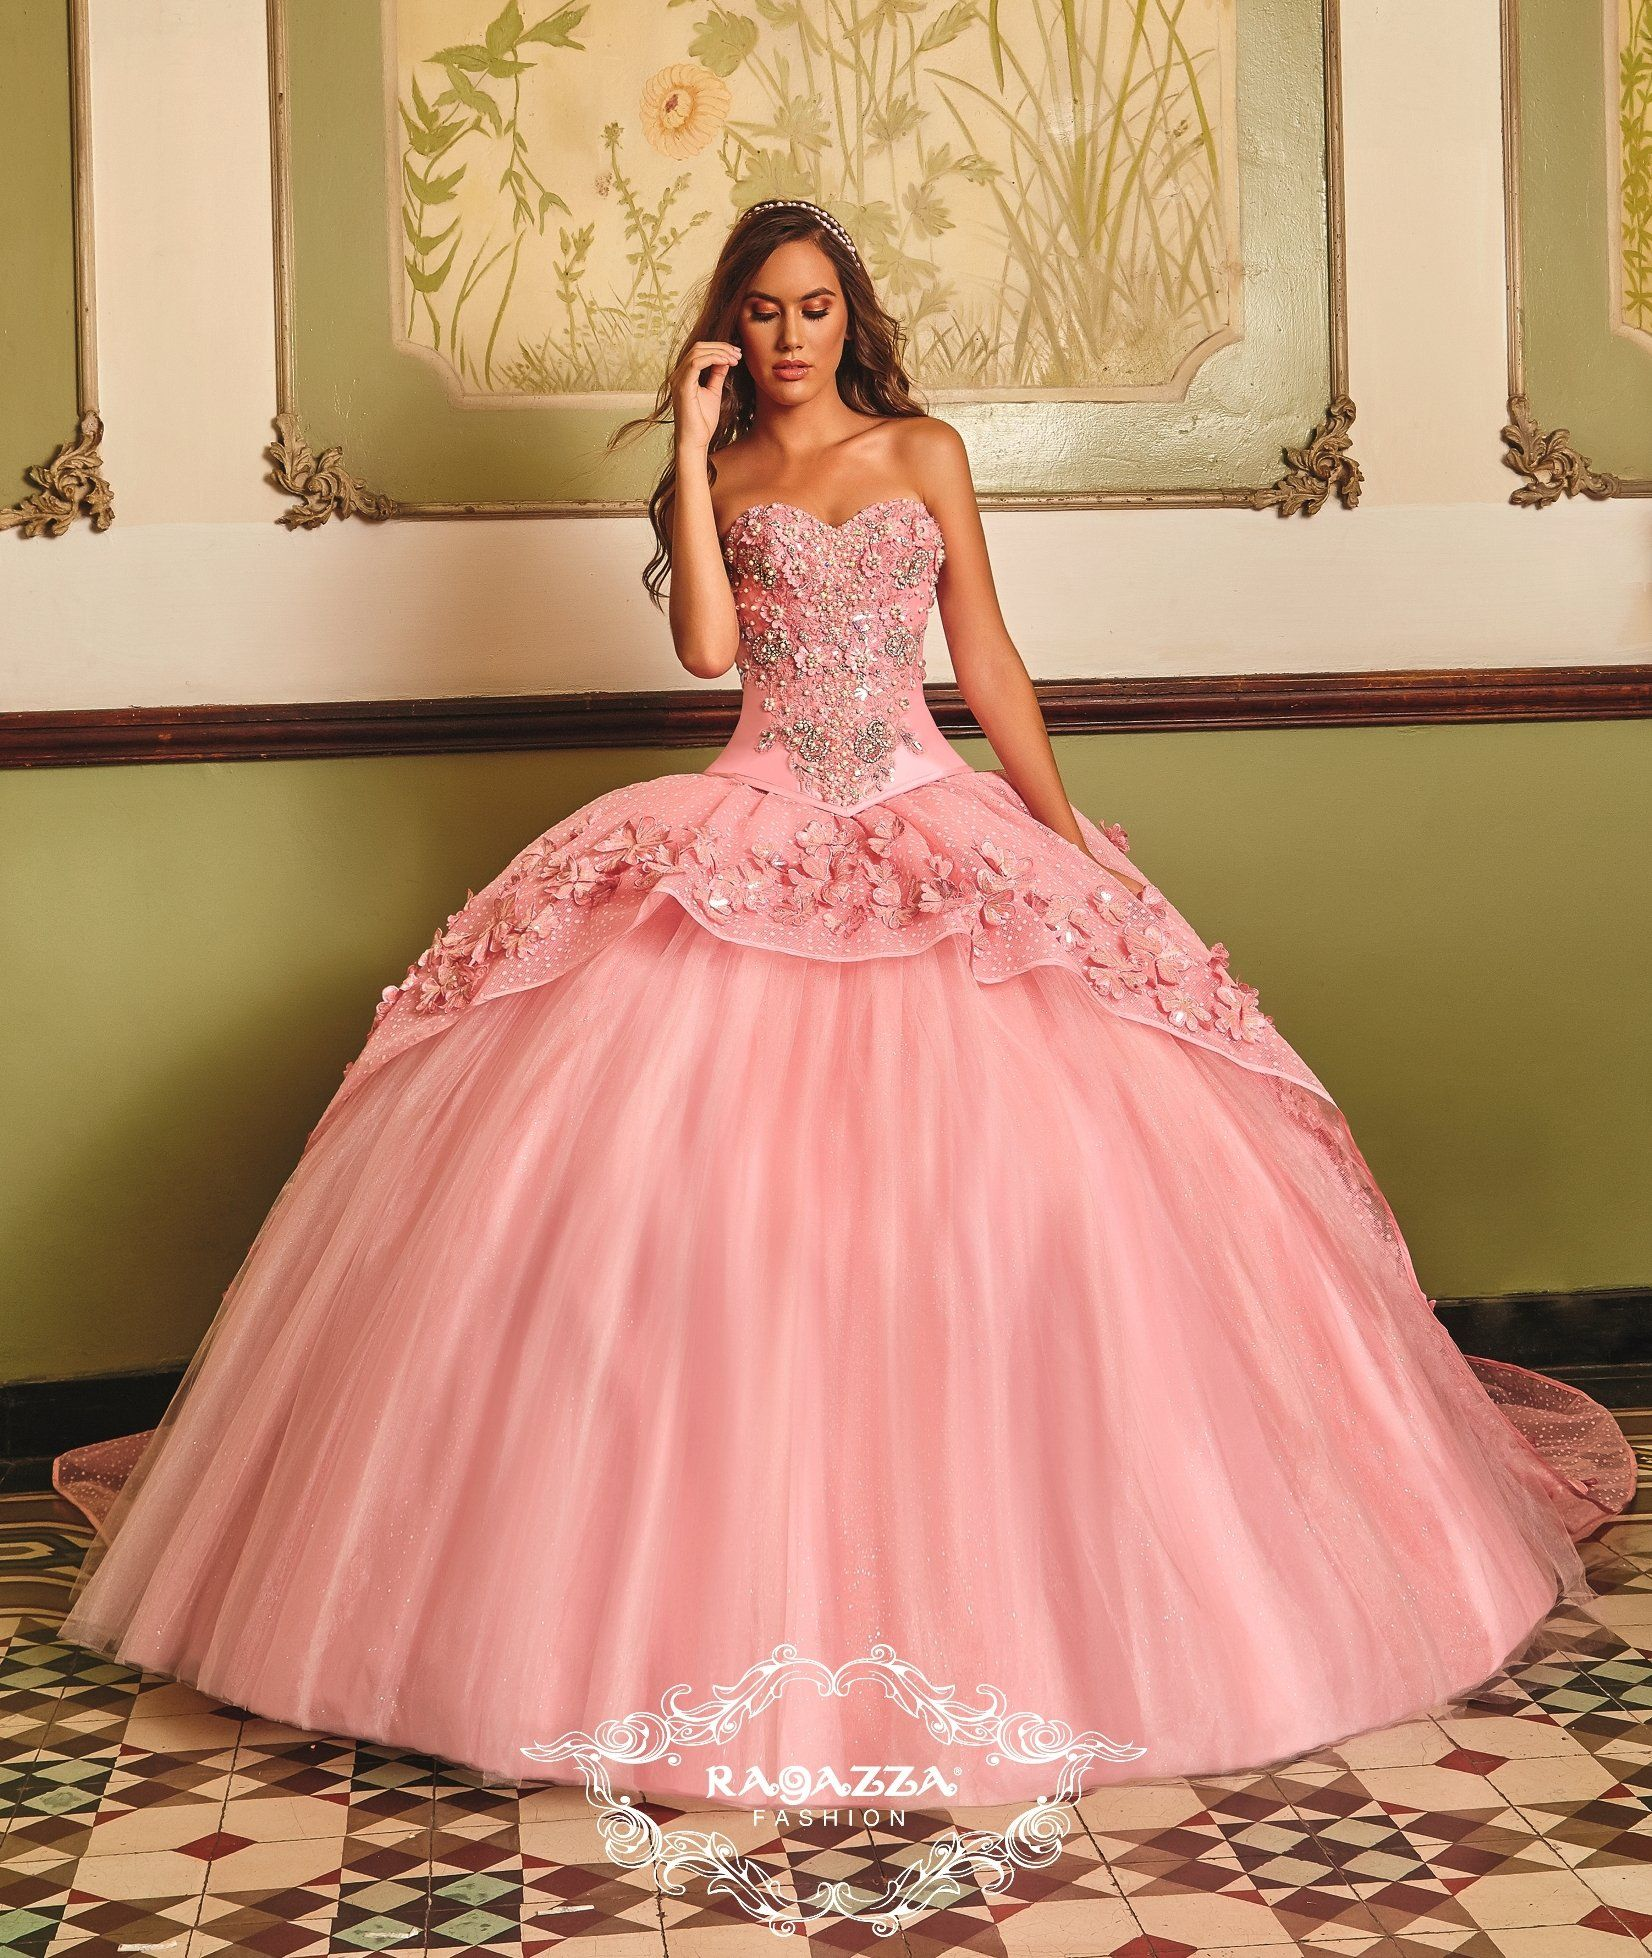 Floral Appliqued Quinceanera Dress by Ragazza Fashion B83-383 ...